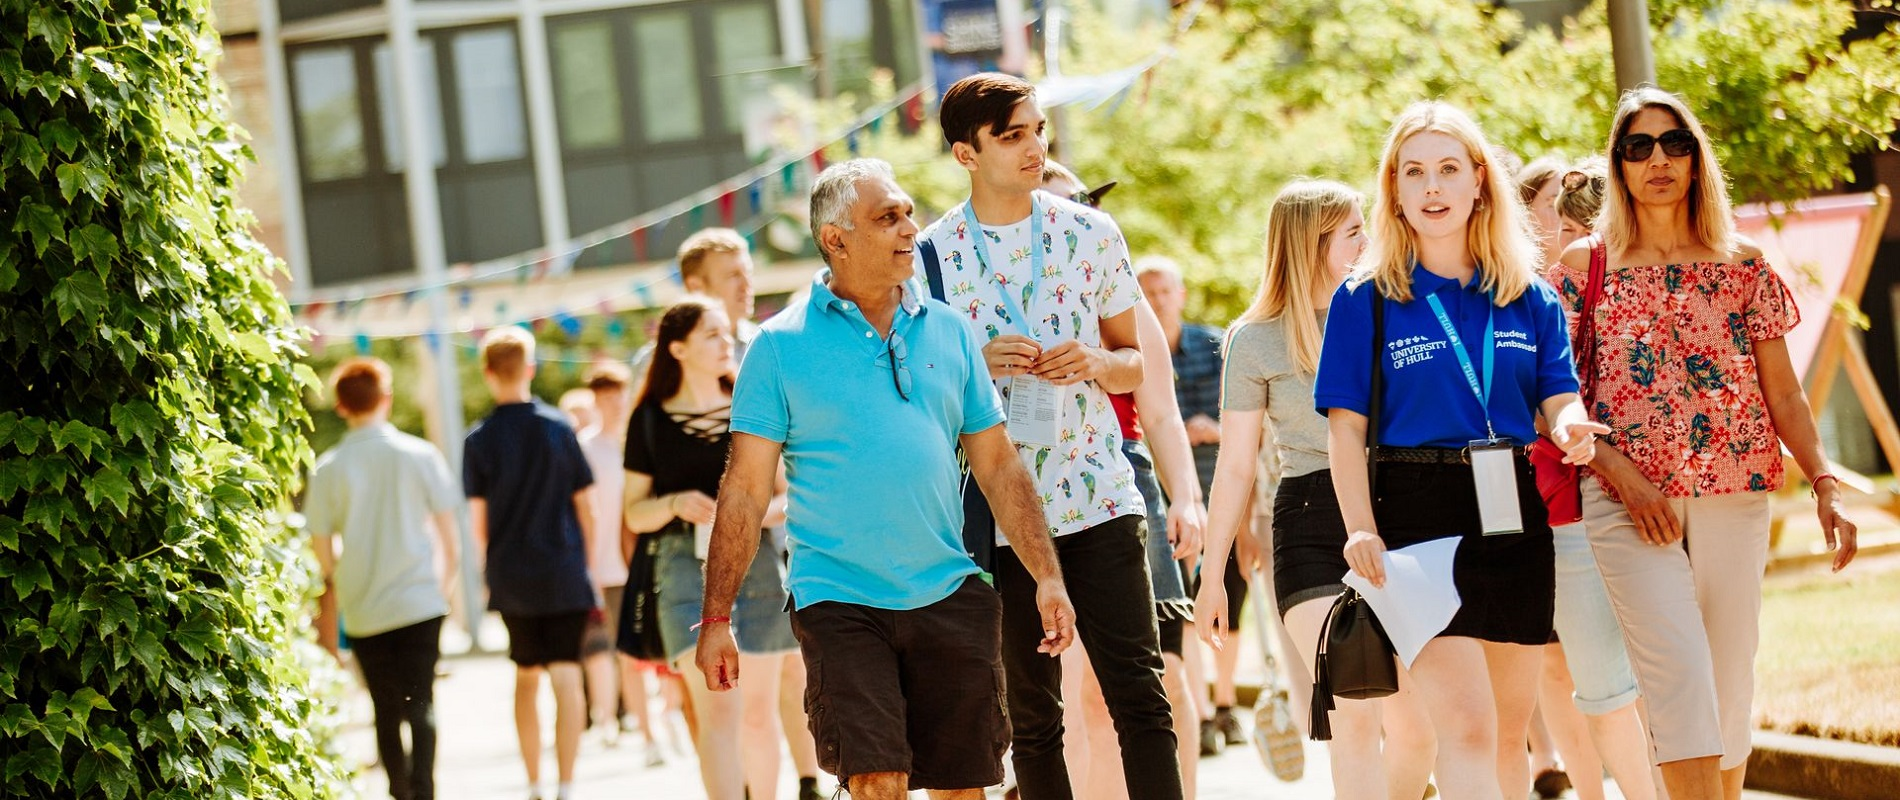 Web Full Screen-Hull University Open Day - Saturday 7th July 2018-111